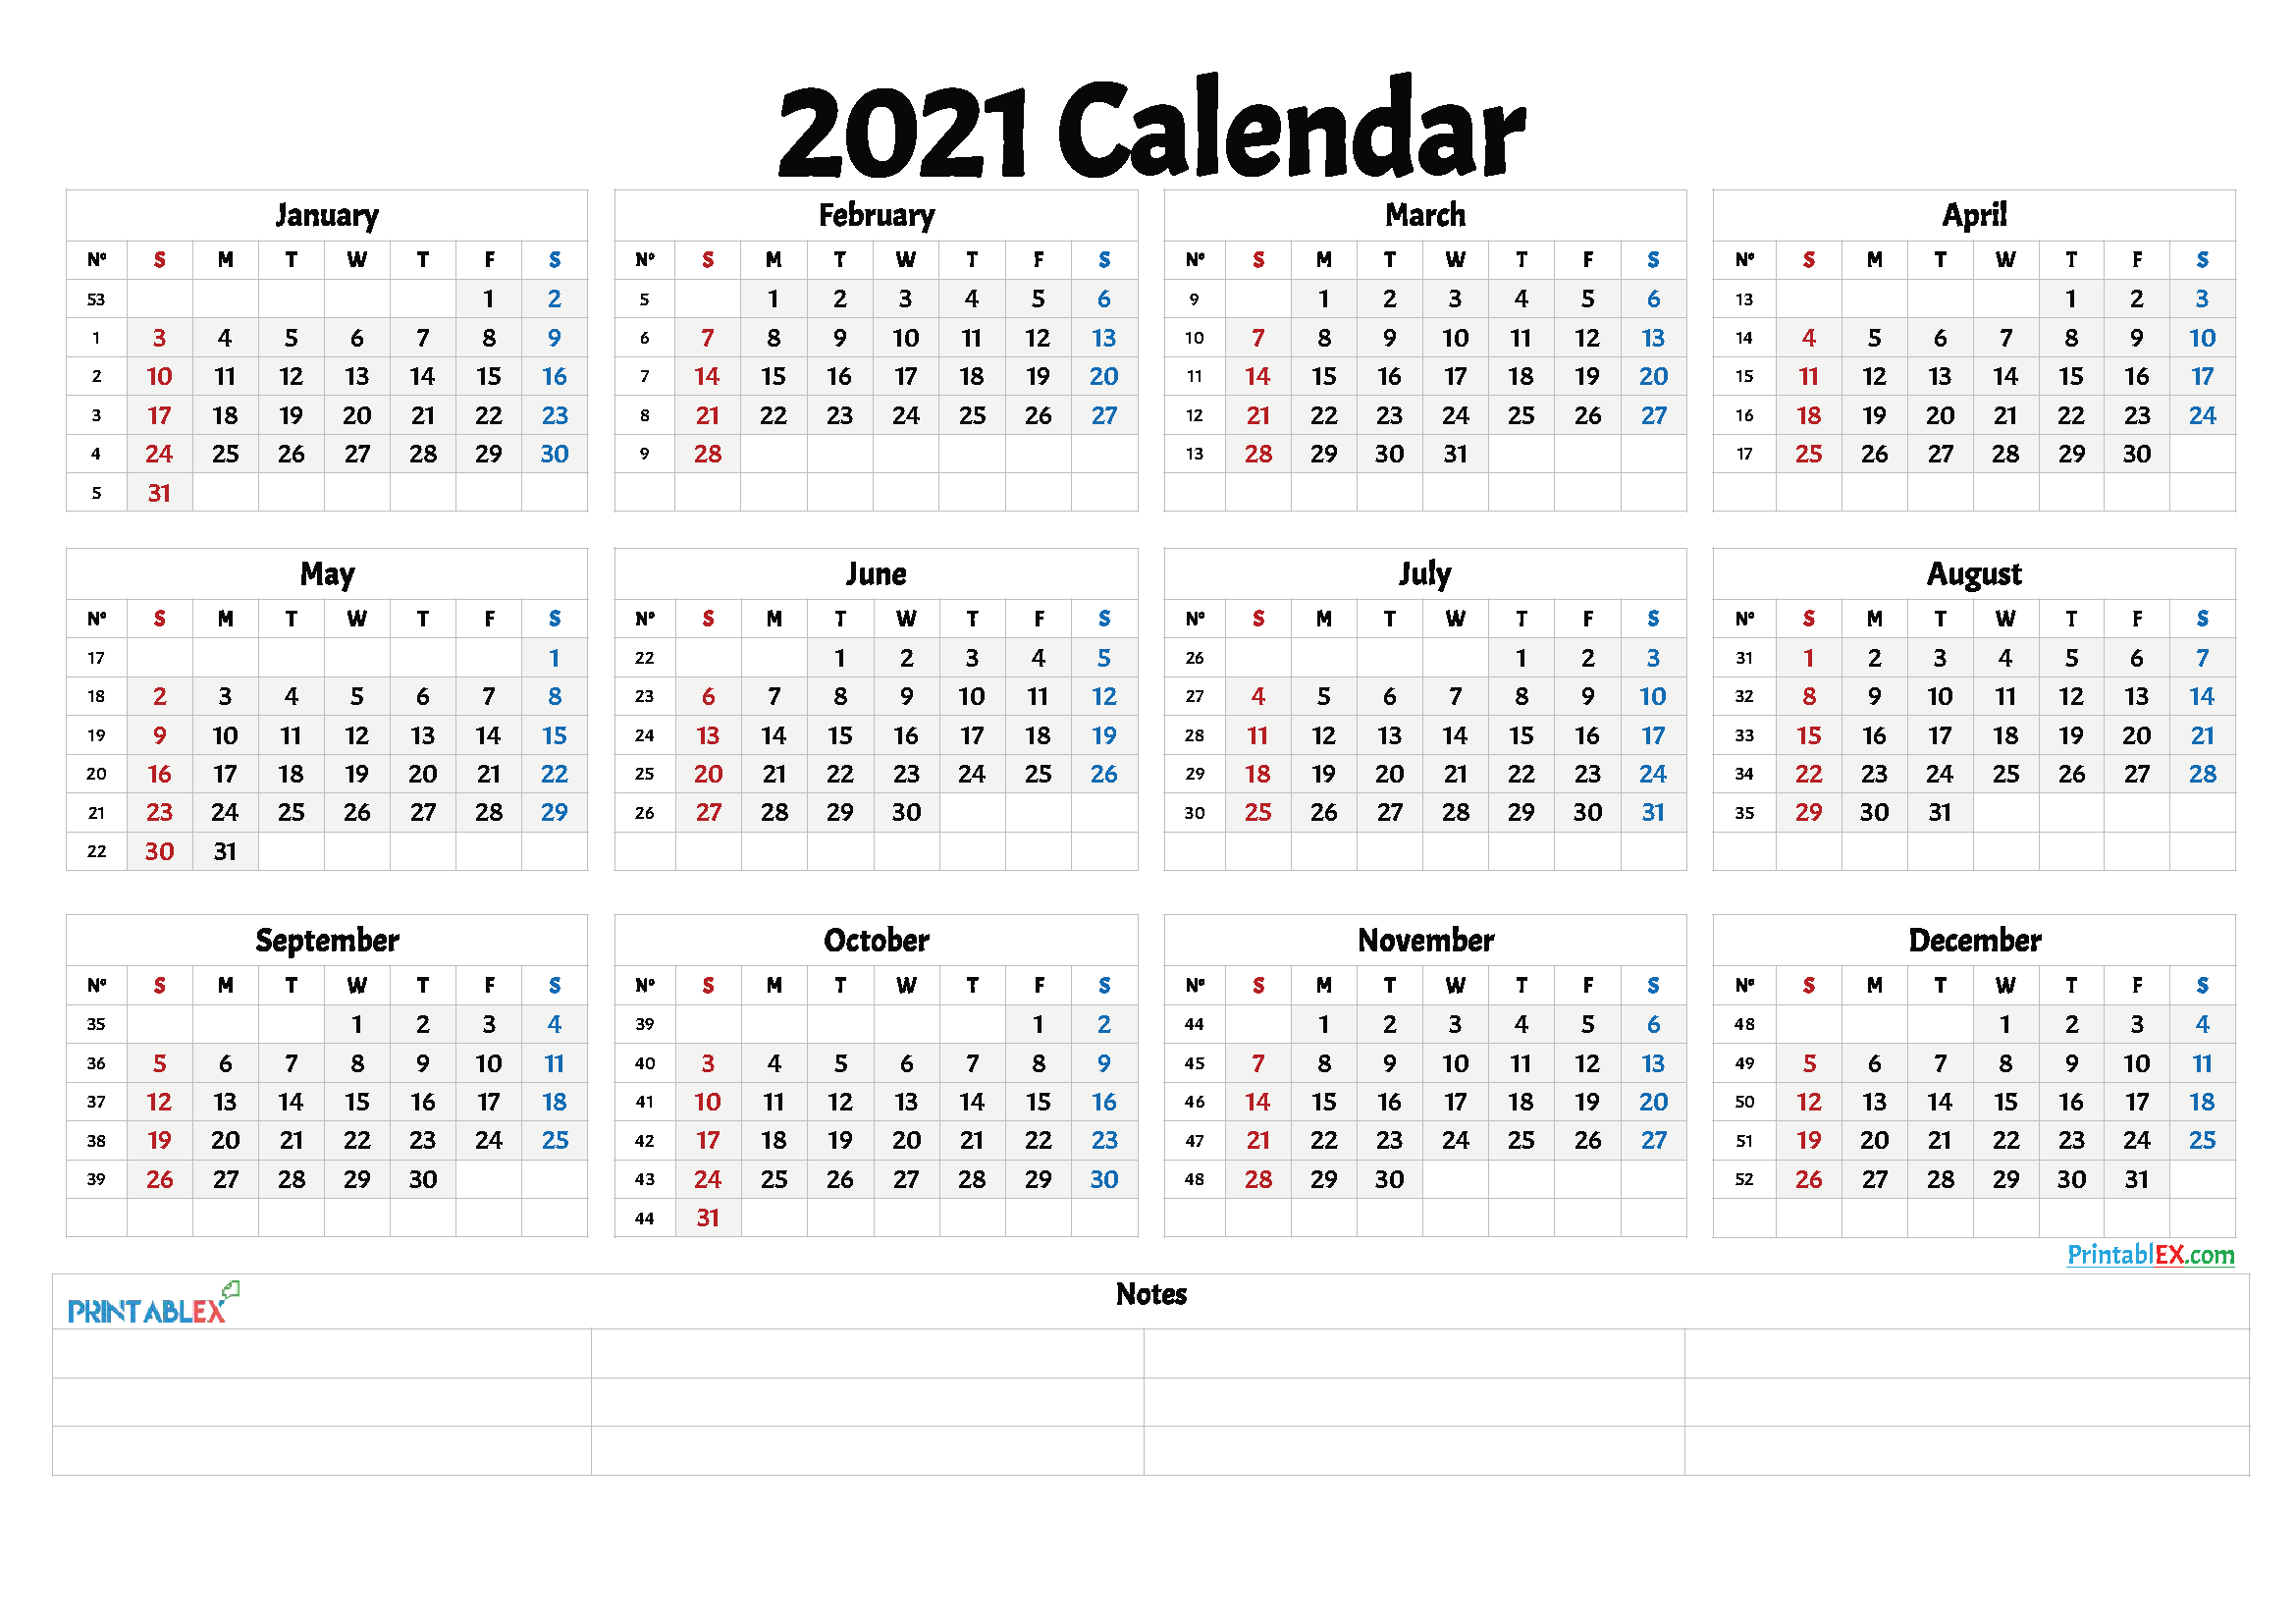 Free Printable 2021 Yearly Calendar with Week Numbers